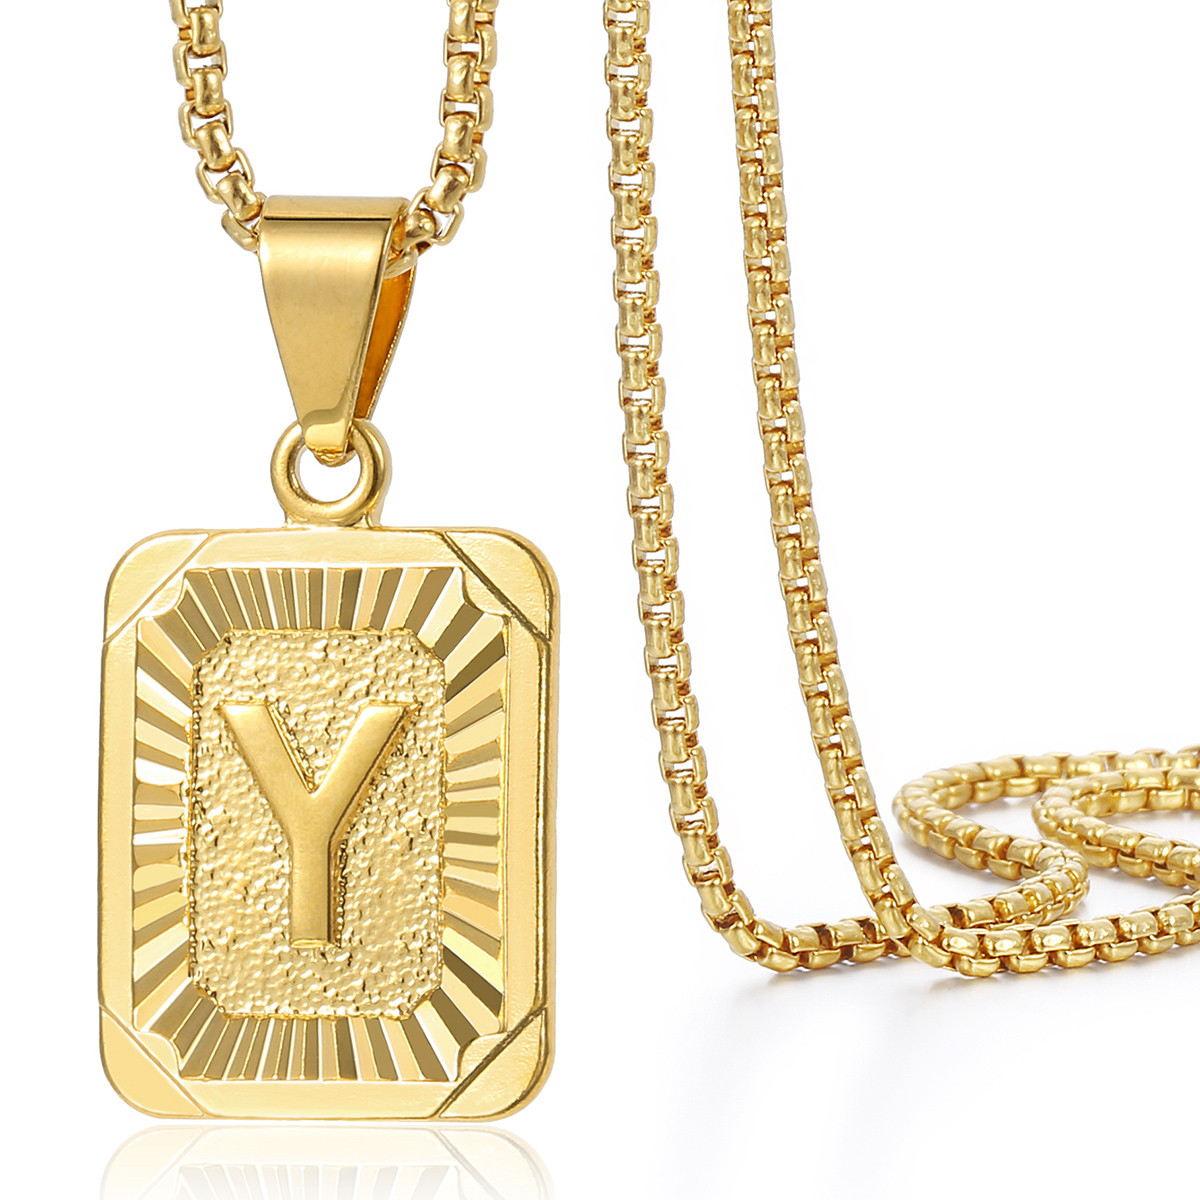 Mens women chain gold plated pendant necklace square initial letter mens women chain gold plated pendant necklace square aloadofball Images